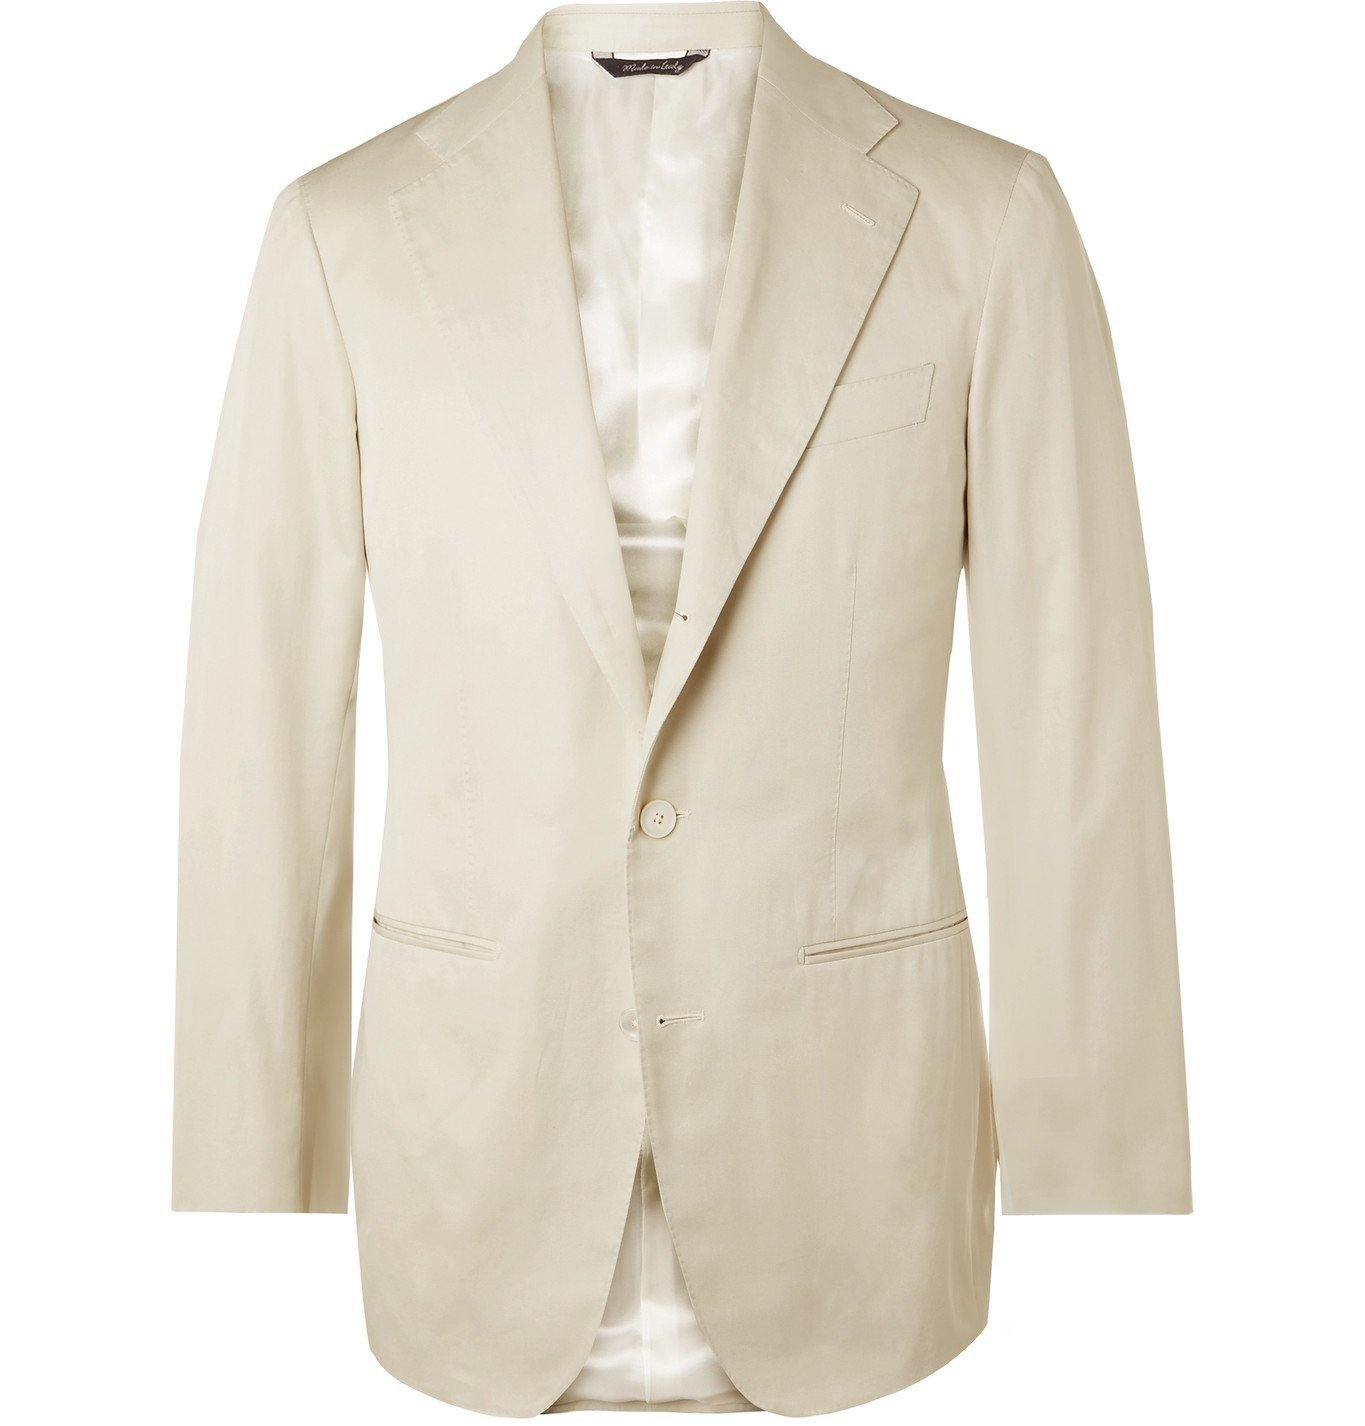 Saman Amel - Slim-Fit Cotton Suit Jacket - Neutrals